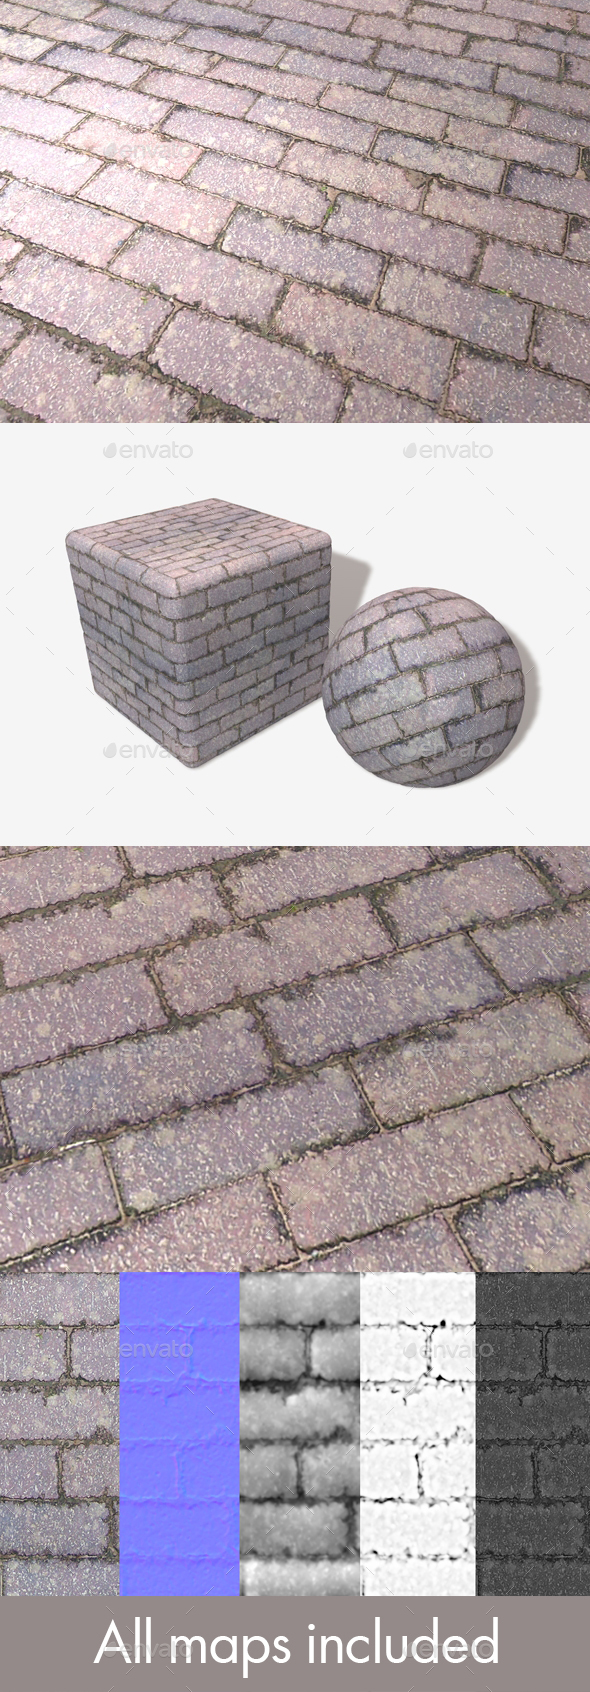 Purple Brick Paving Seamless Texture - 3DOcean Item for Sale